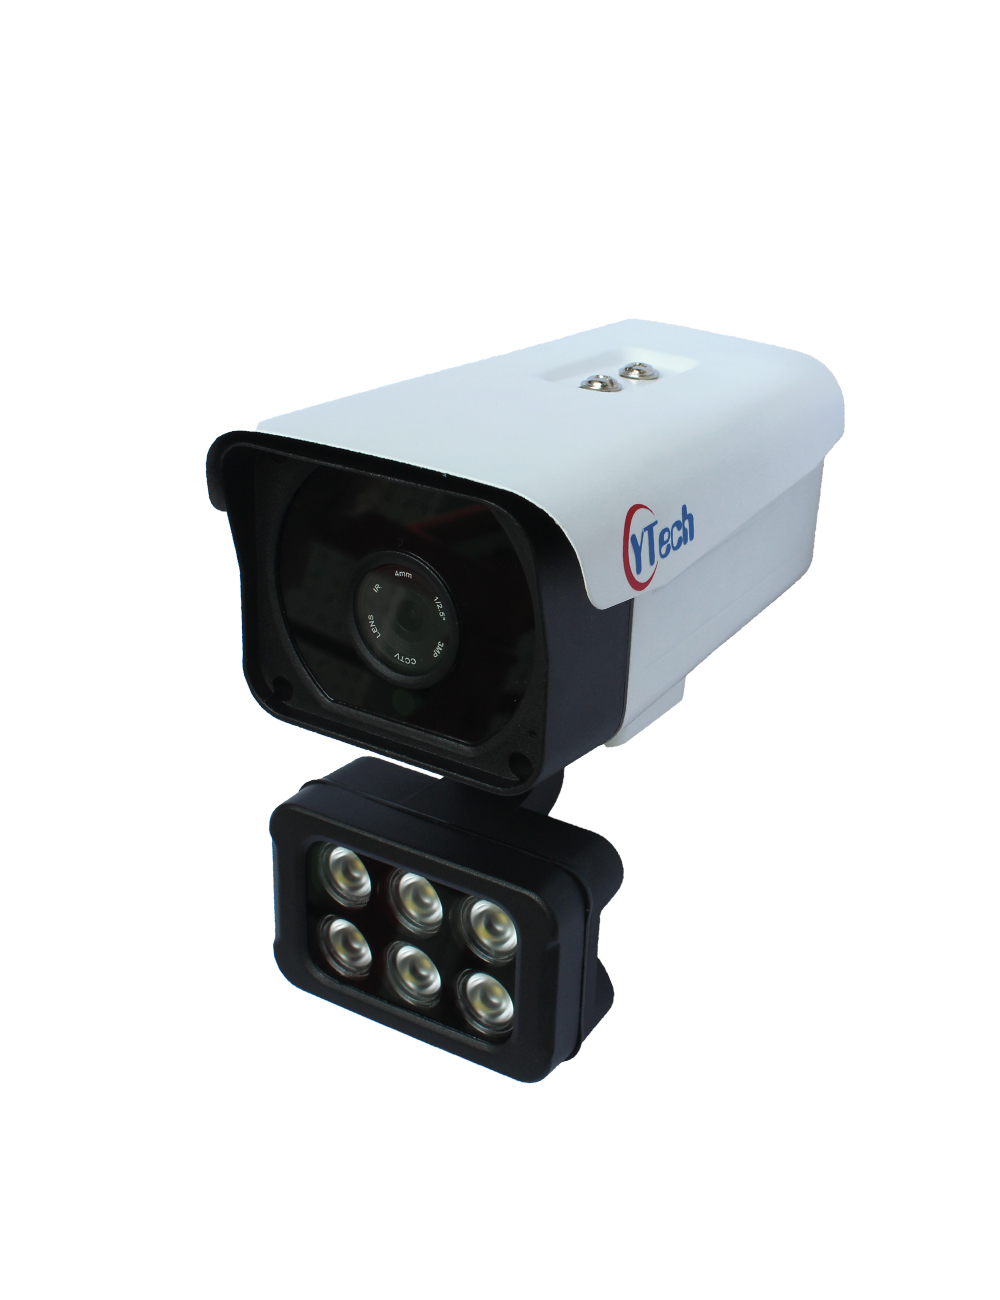 BK6 Series White Light Waterpoof IP Cameras